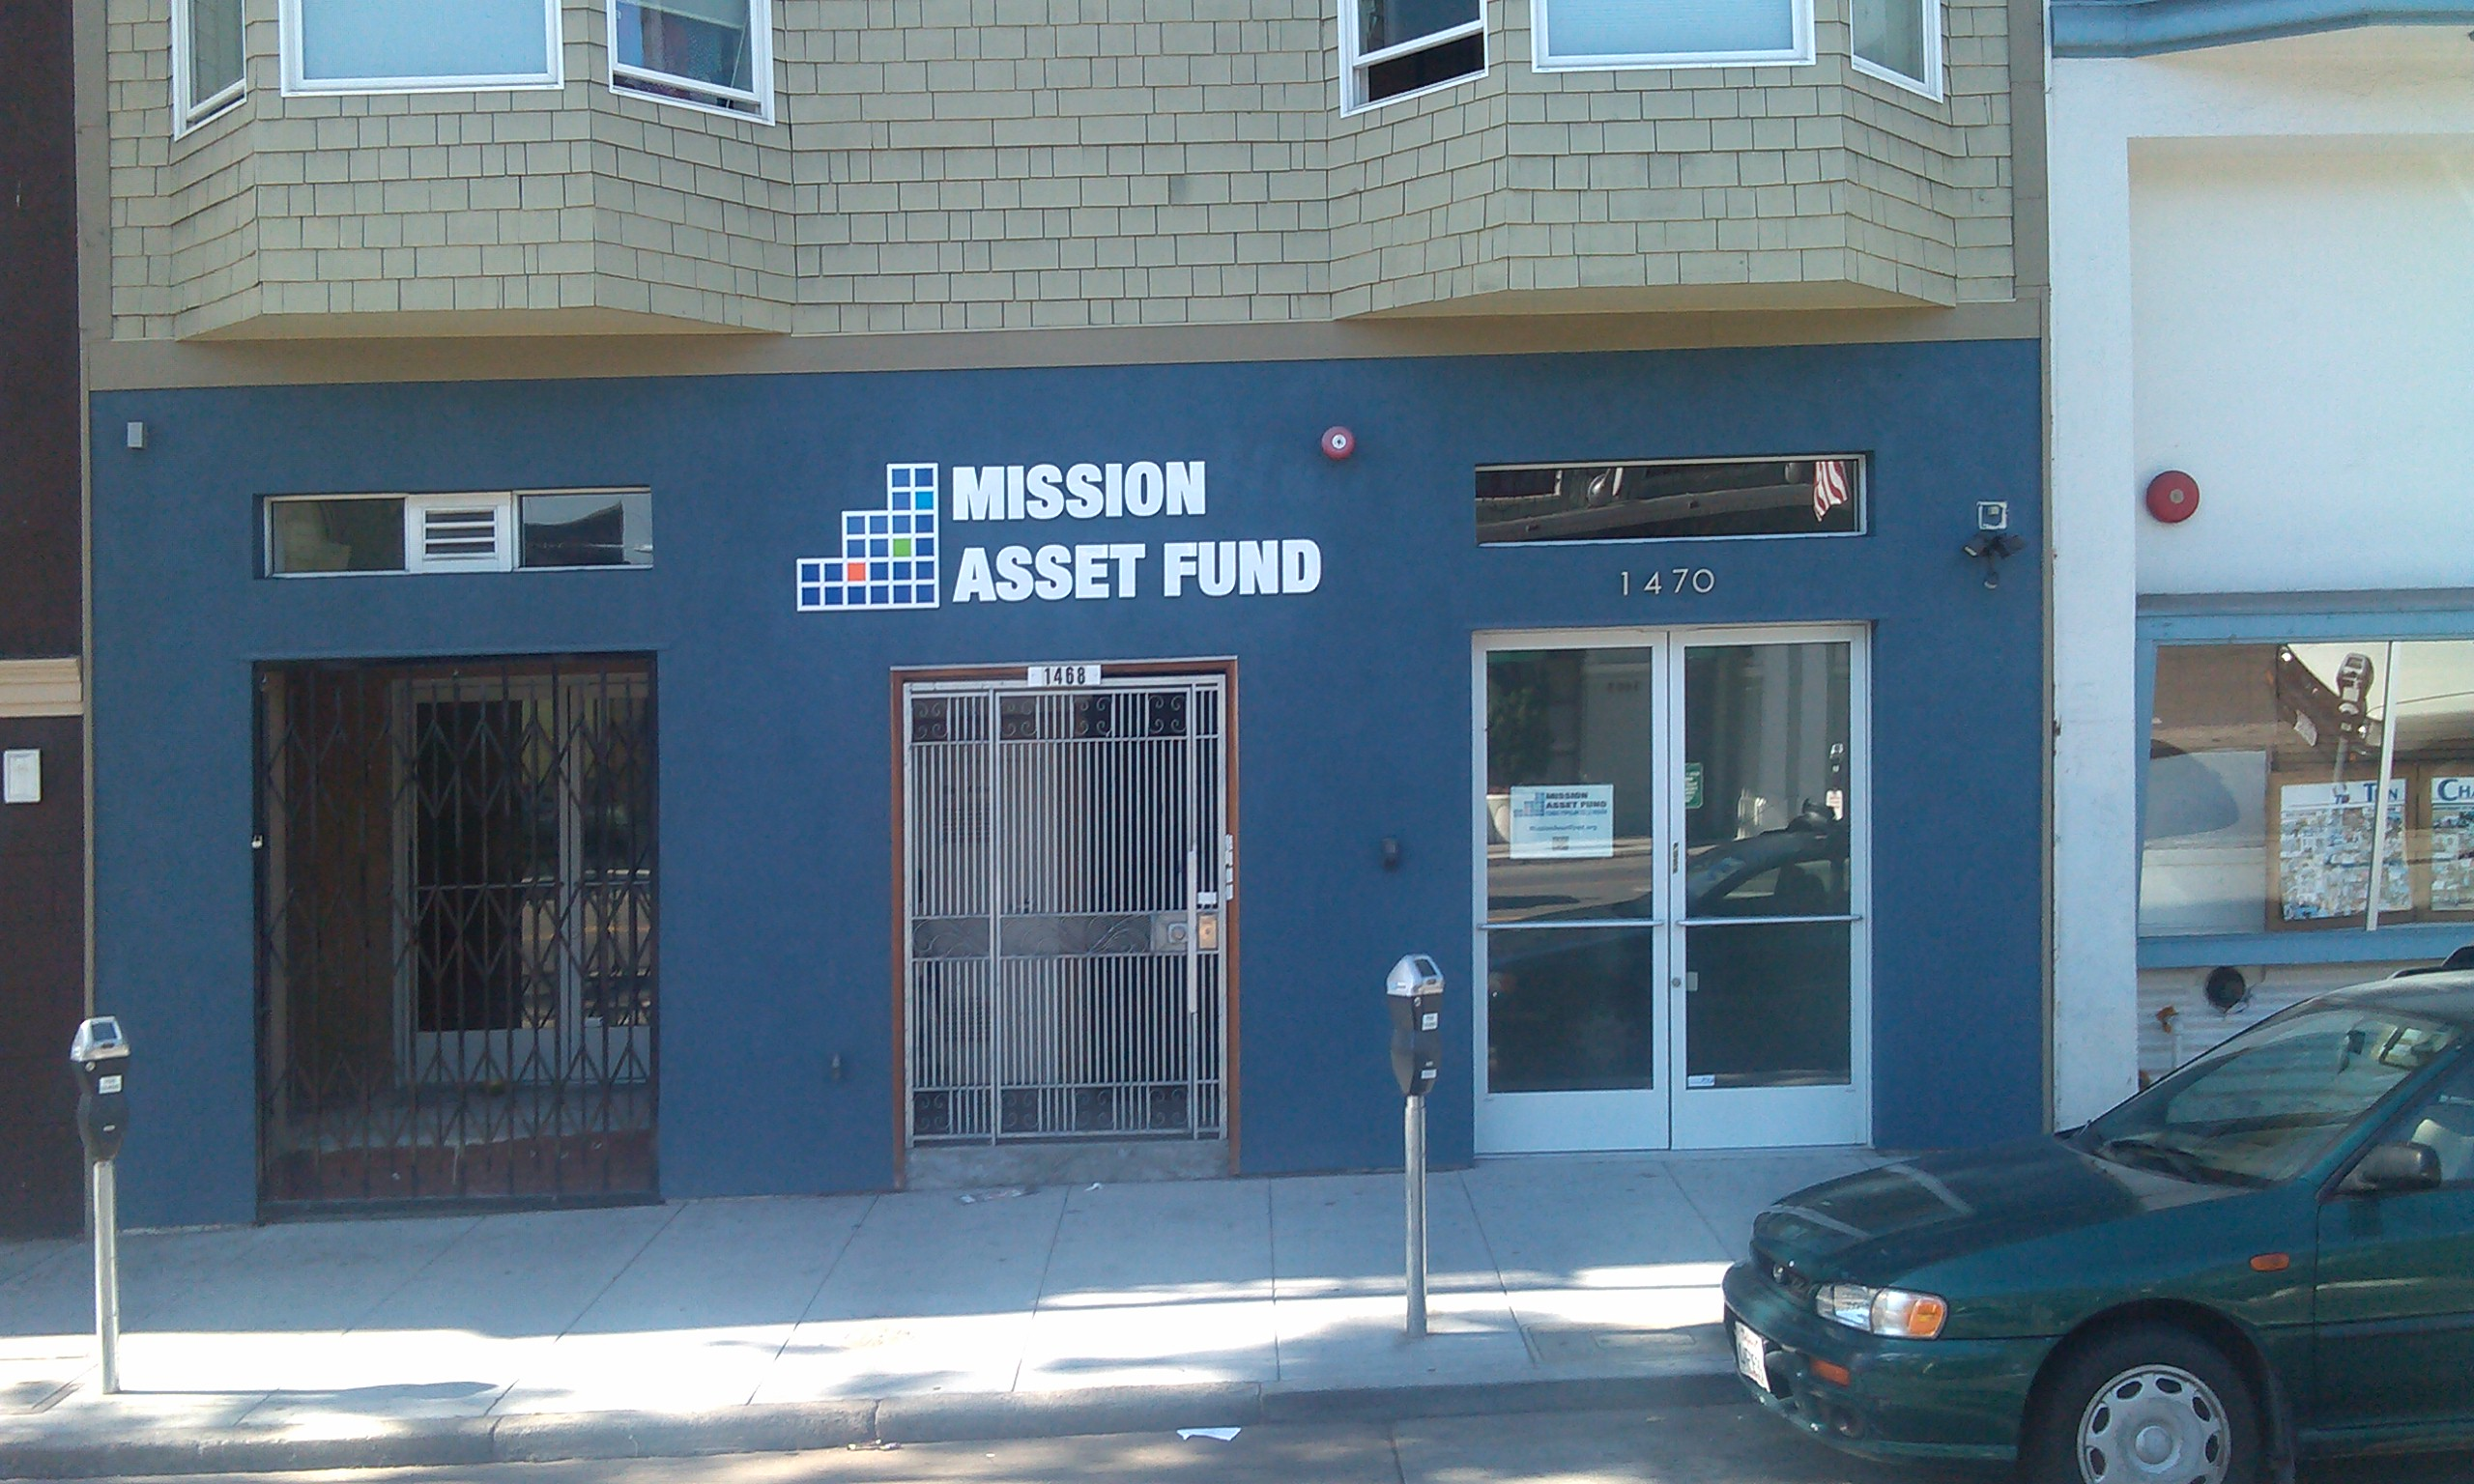 Mission Asset Fund Acrylic letters